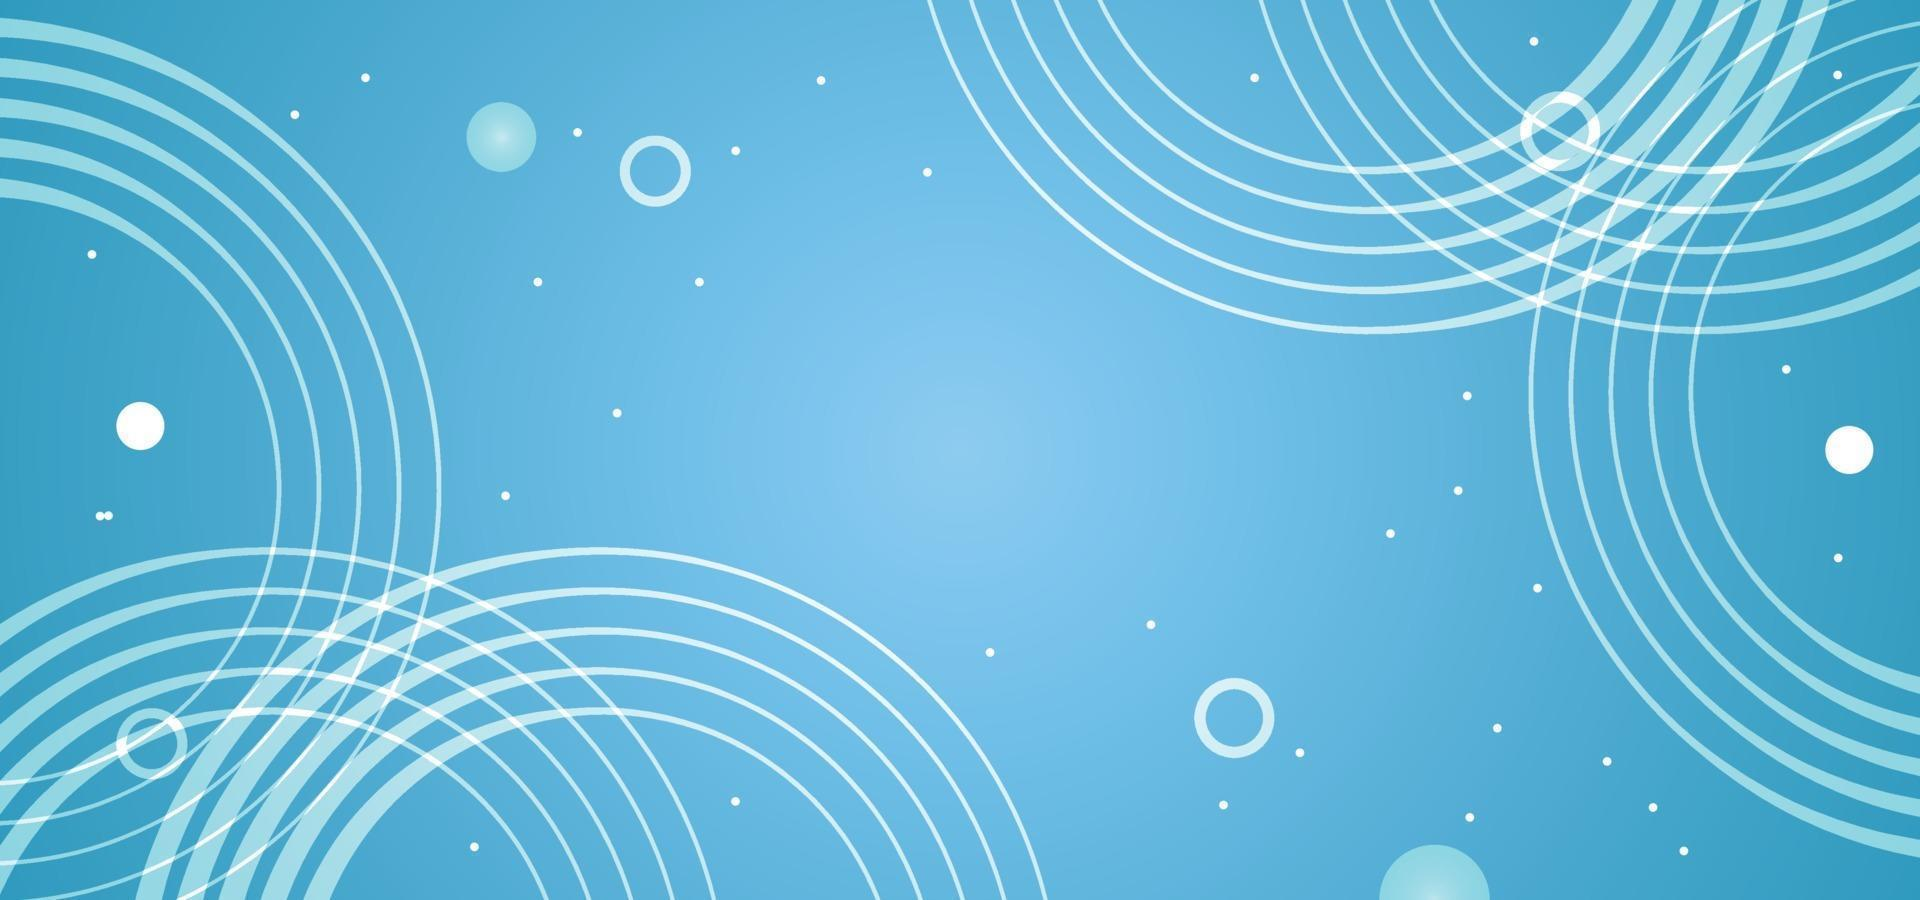 abstract blue circles background or banner vector